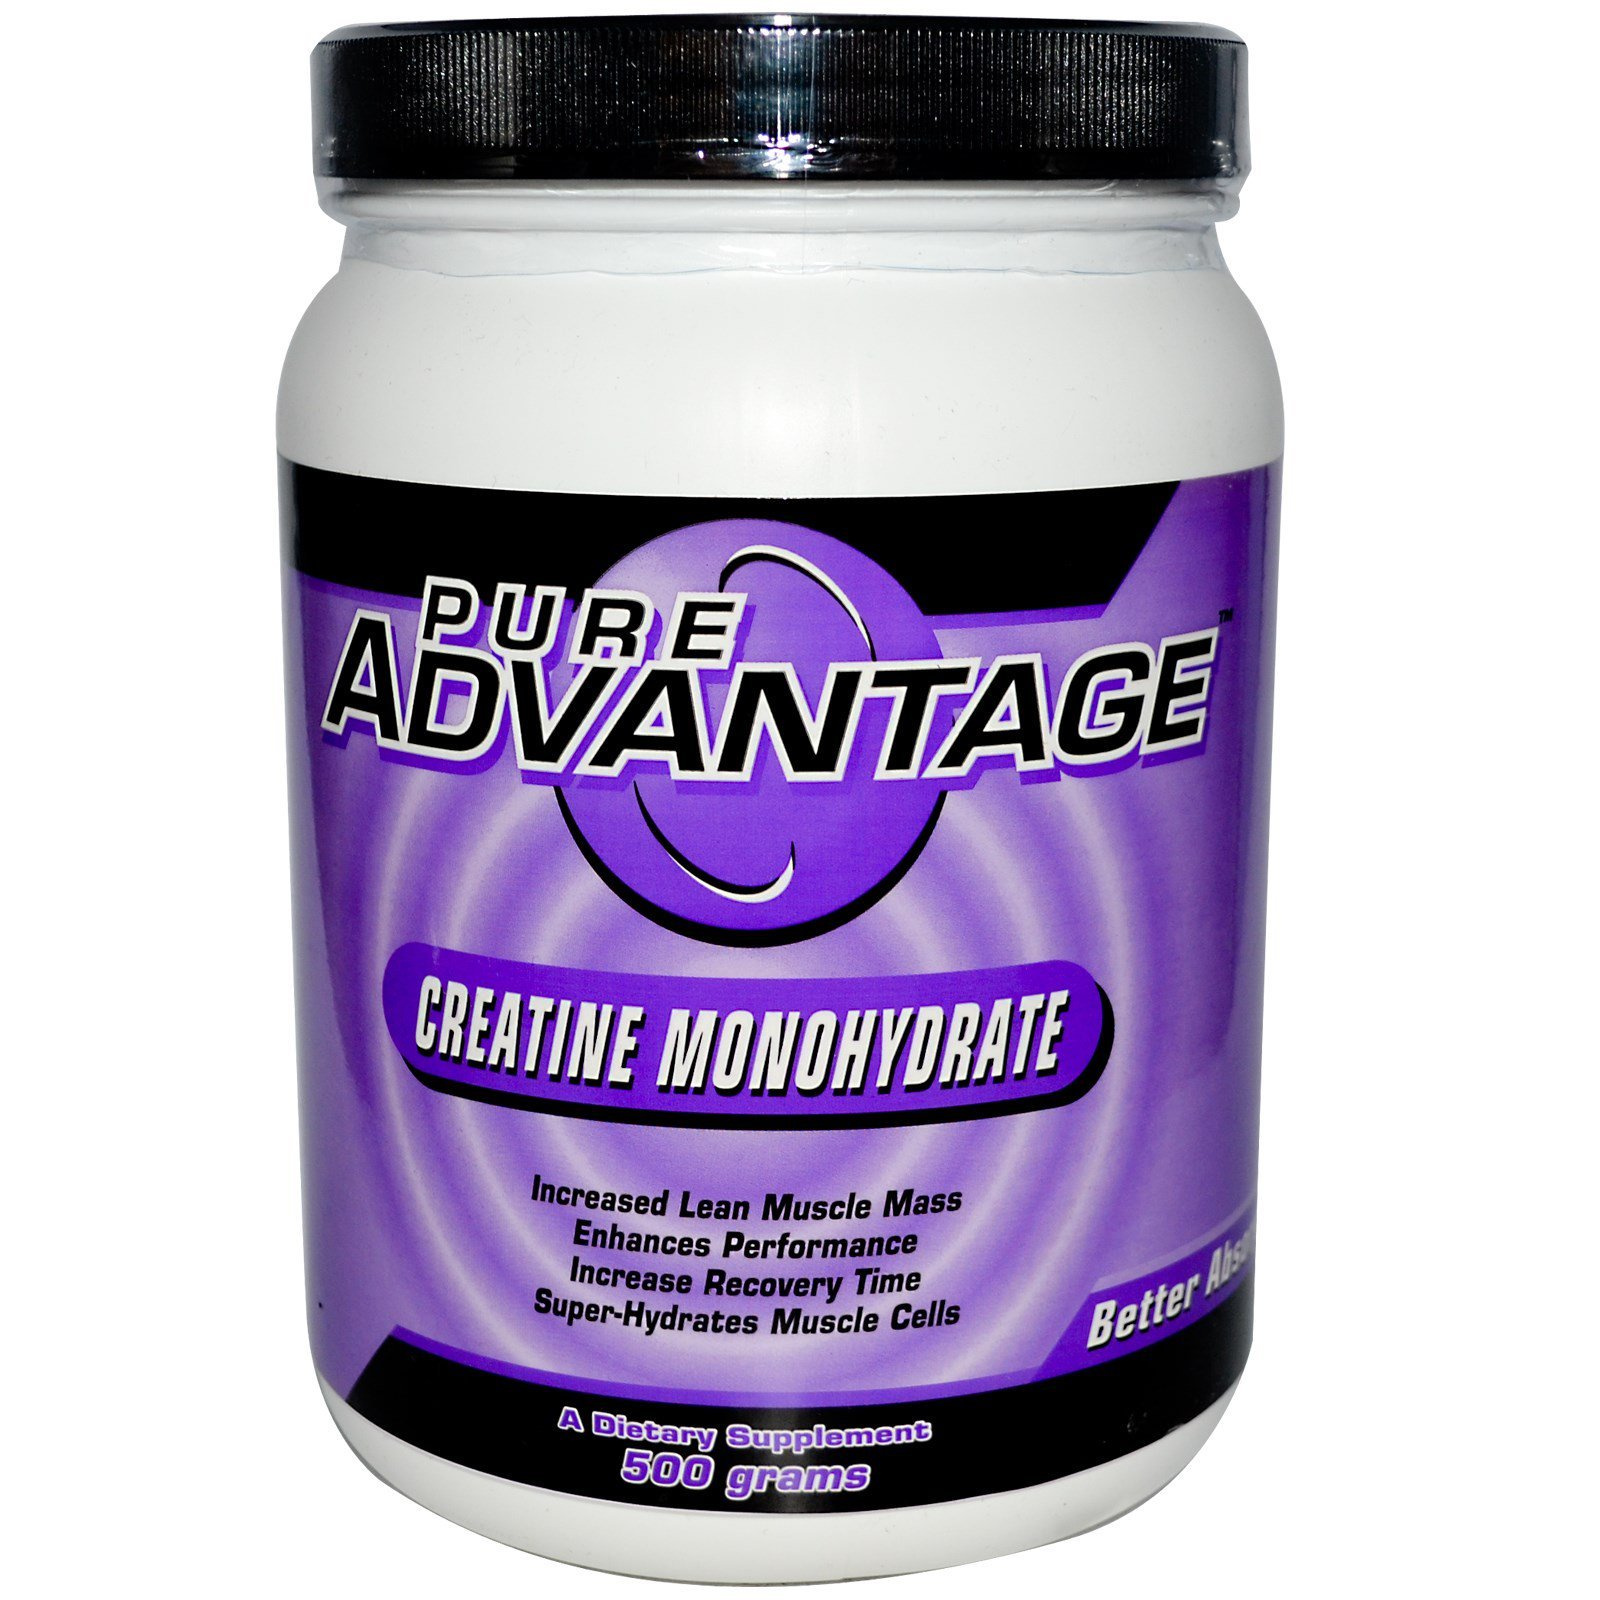 the advantages of creatine in humans health Here's how creatine it has a number of potential benefits and has been shown through extensive clinical research to be safe, without adverse health risks 1.